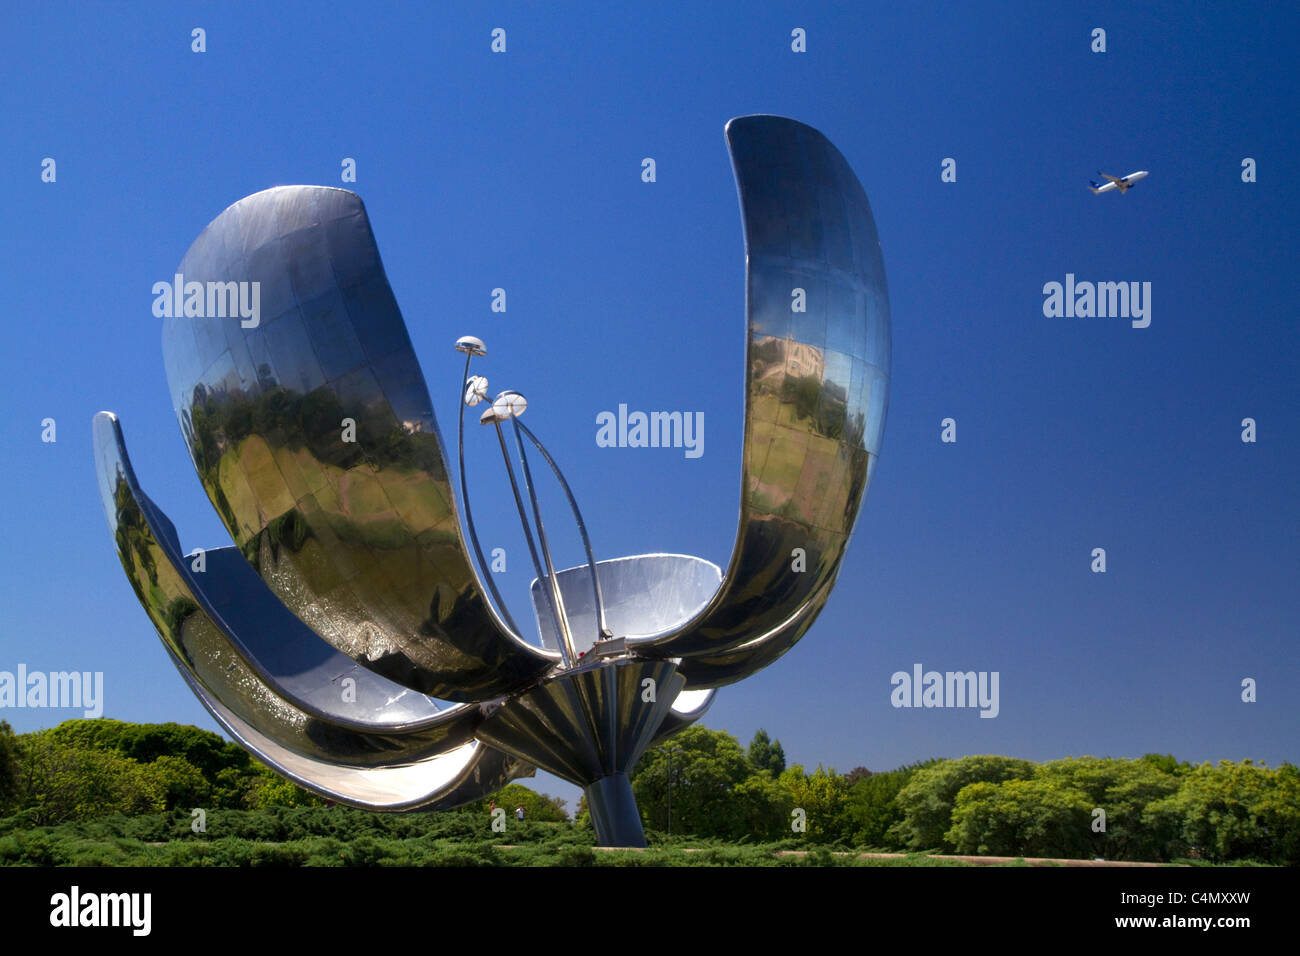 Floralis Generica is a sculpture made of steel and aluminum located in Plaza de las Naciones Unidas in Buenos Aires, - Stock Image